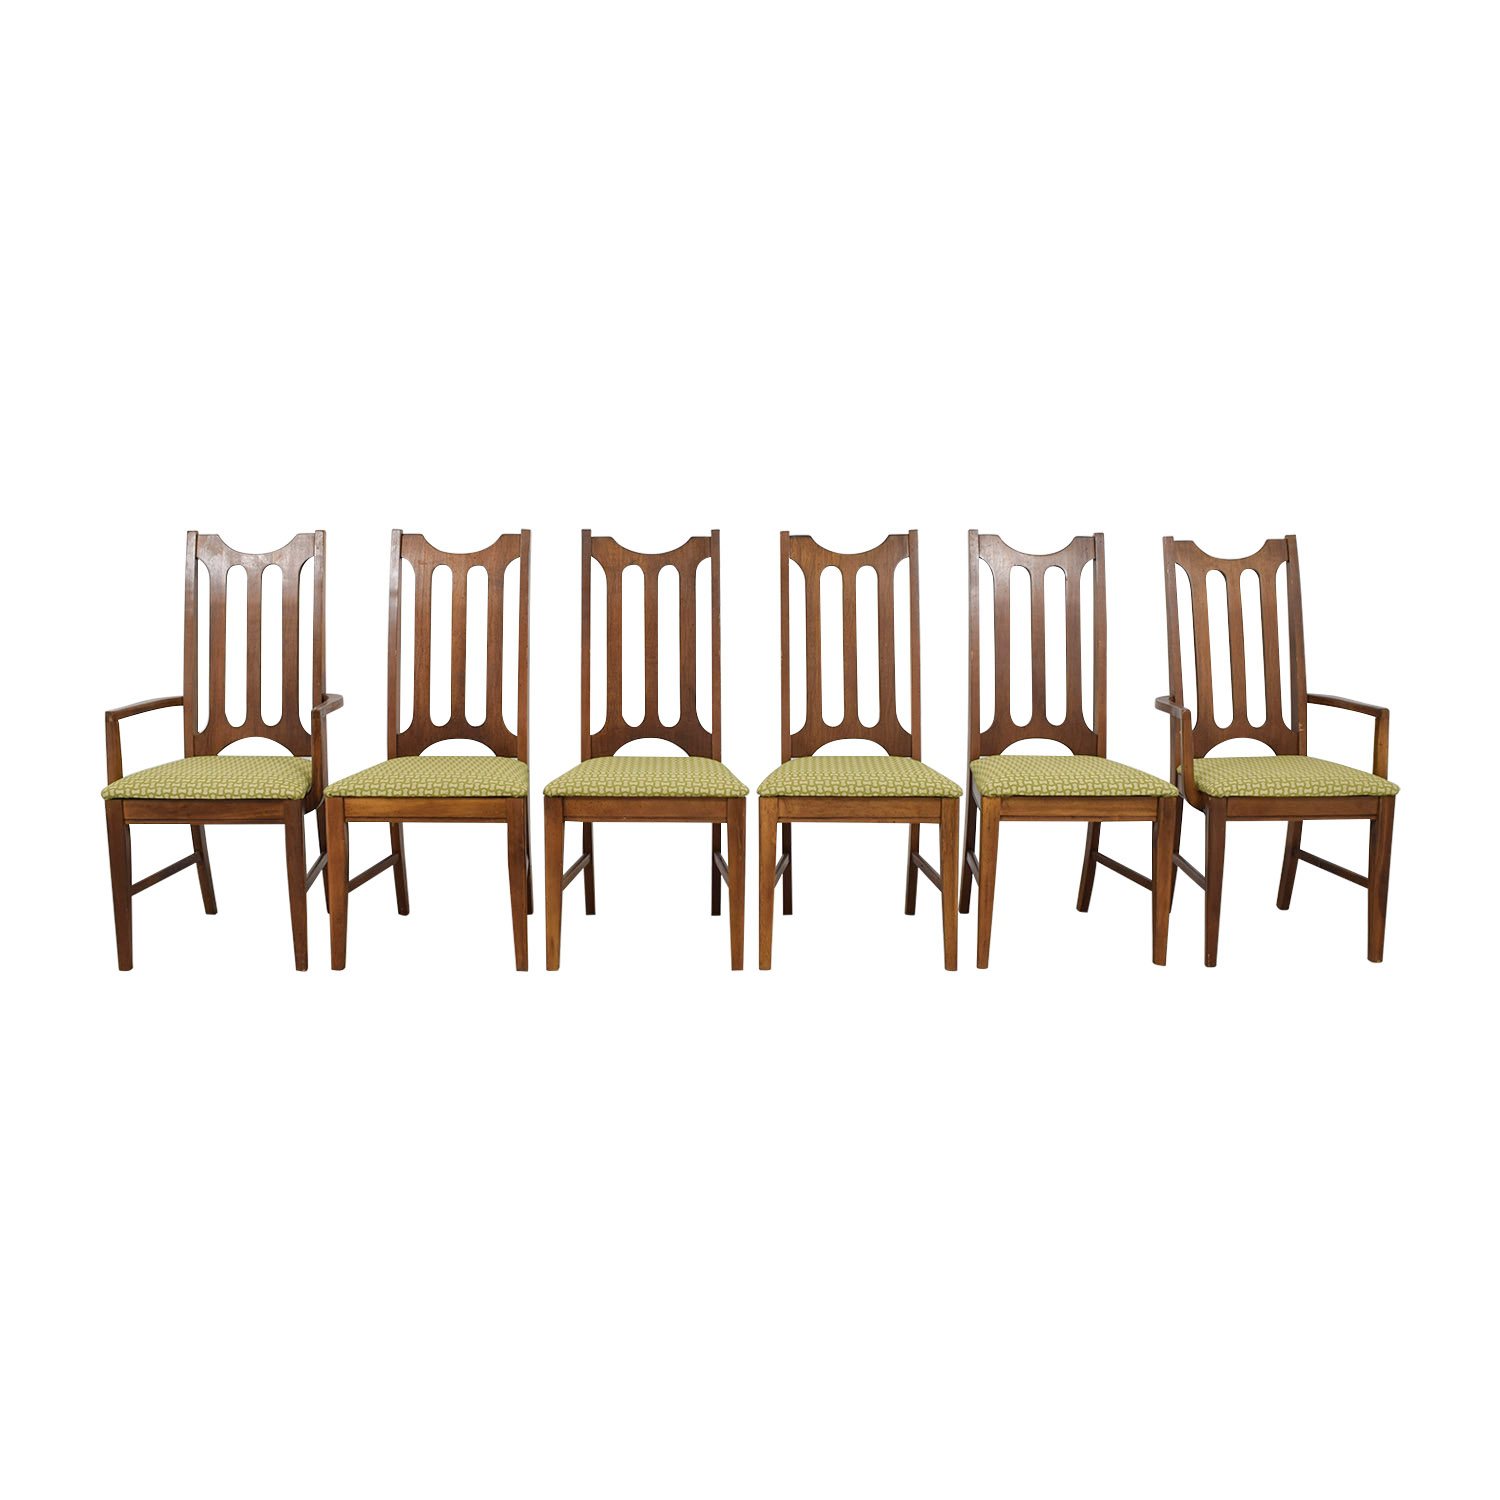 green upholstered dining chairs revolving chair tender 90 off bassett furniture mid century used